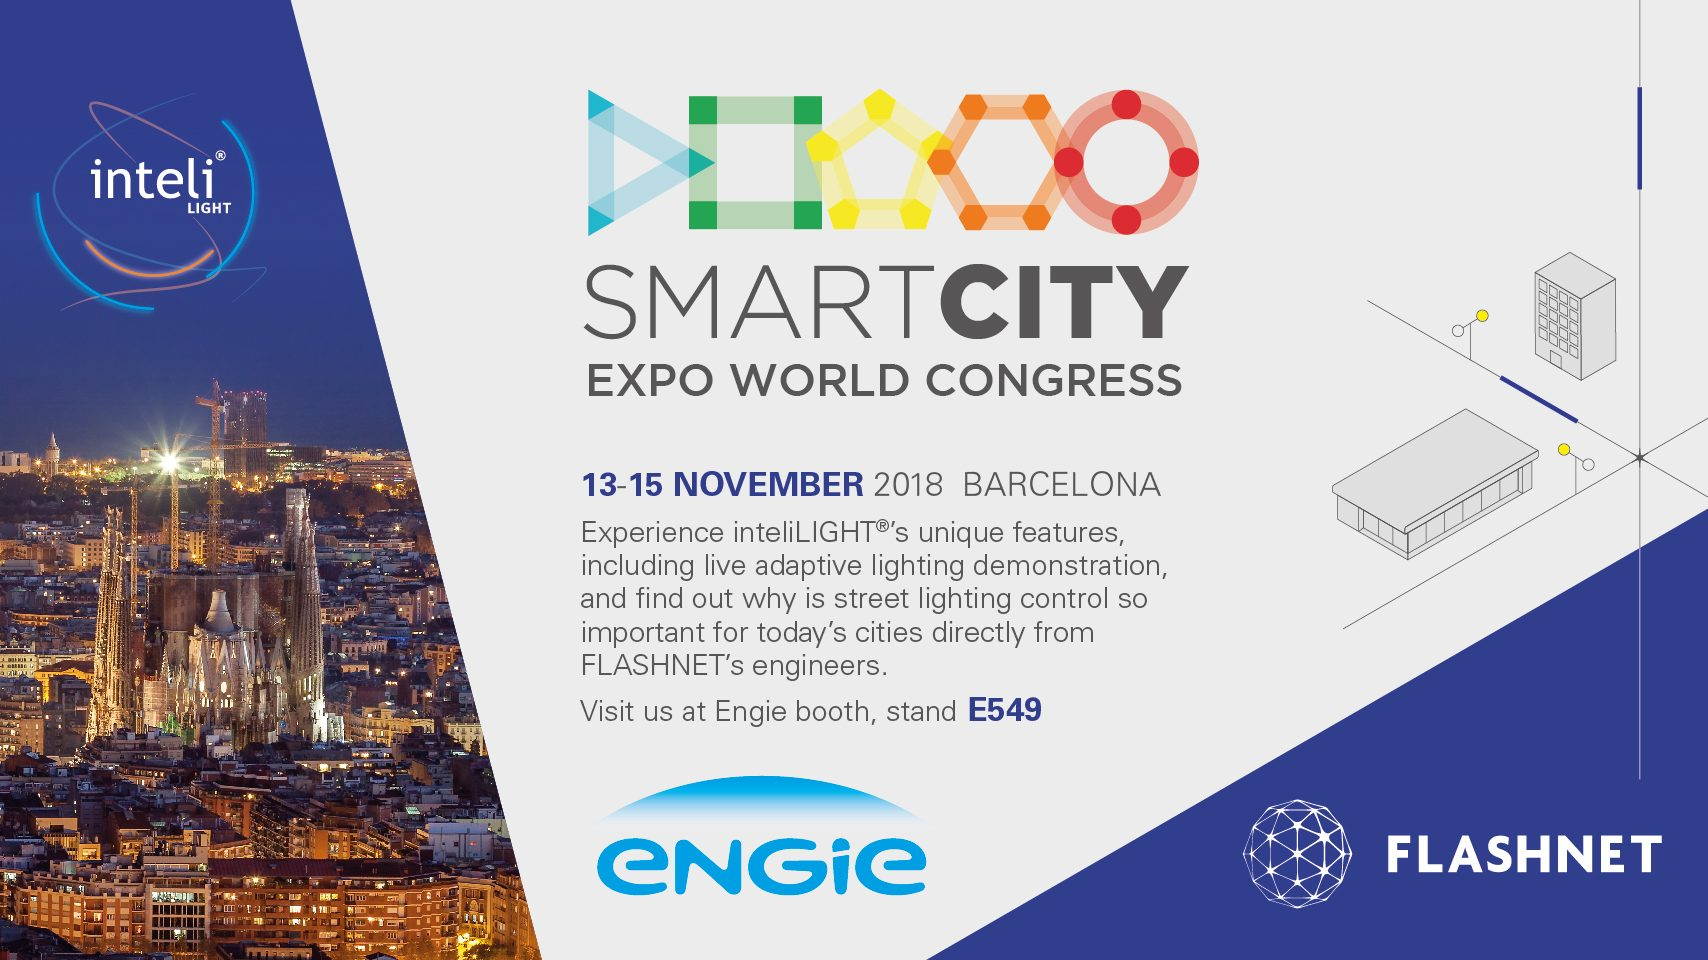 Part of ENGIE's global effort for Inclusive & Sharing Cities, Flashnet features inteliLIGHT® smart streetlight control during Barcelona Smart City Expo World Congress in November 2018